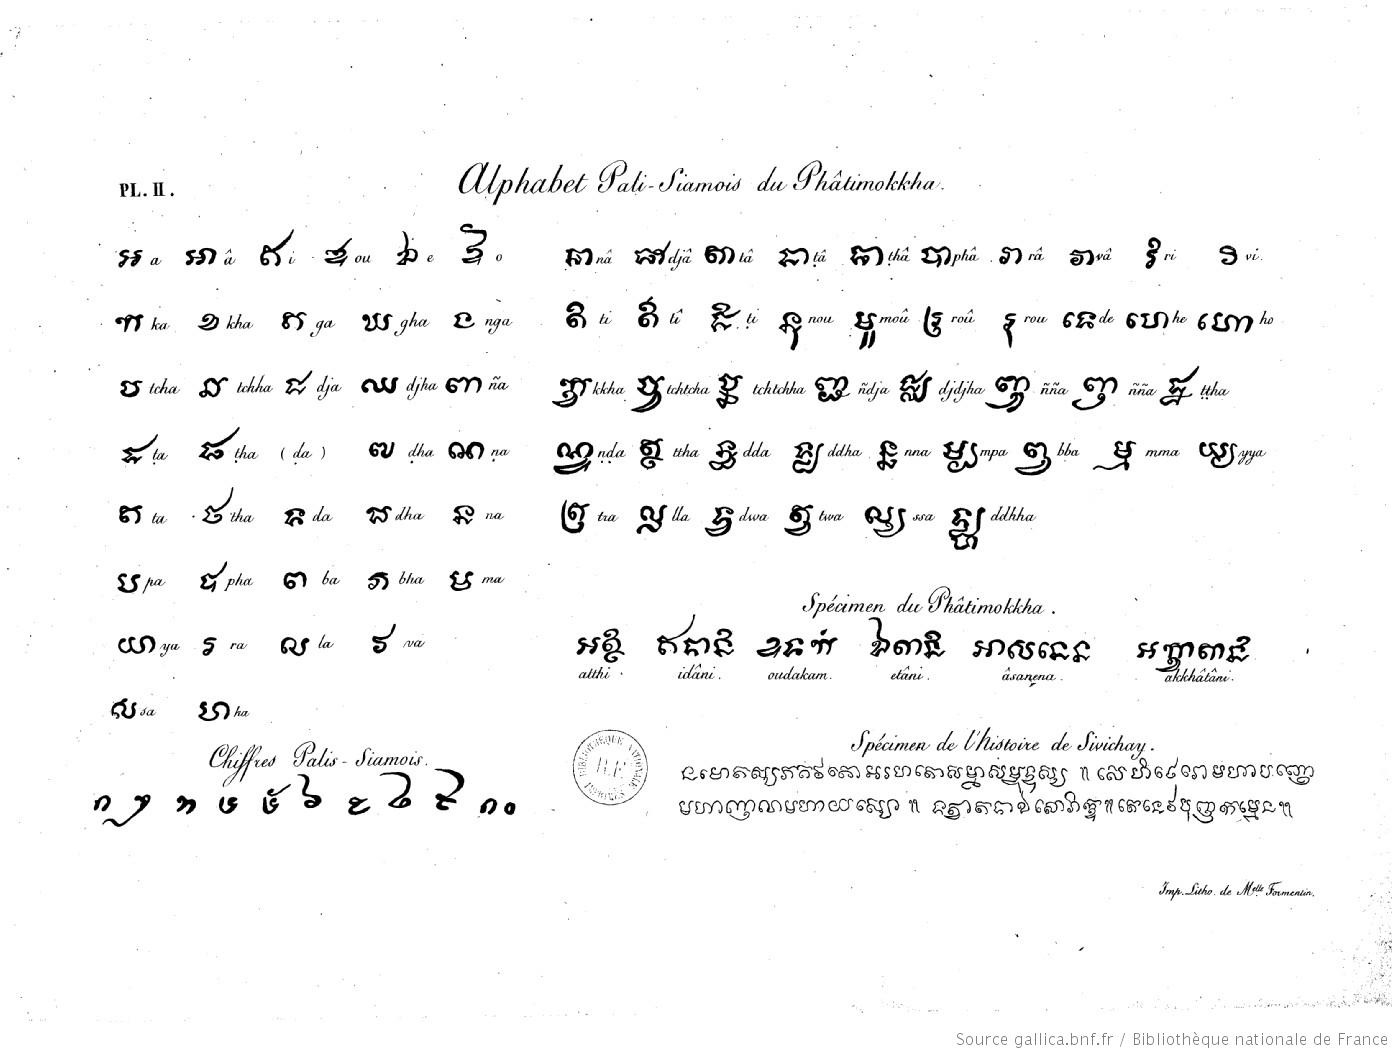 File:L'Alphabet Pali, planche 2, page 6.jpg - Wikimedia Commons